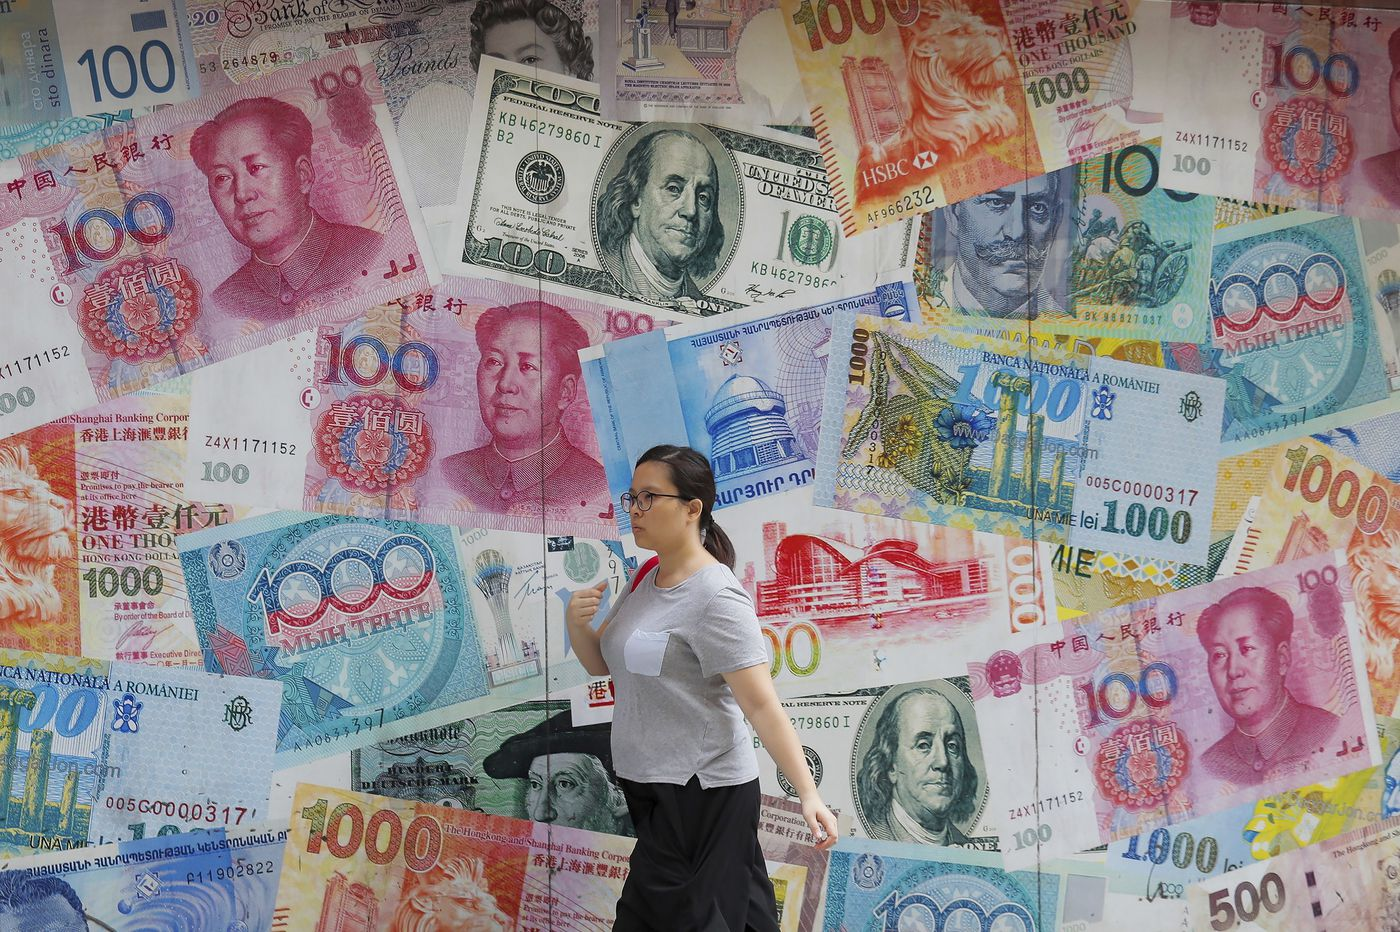 China's renminbi move shows they are hunkering down, ready for a long trade war